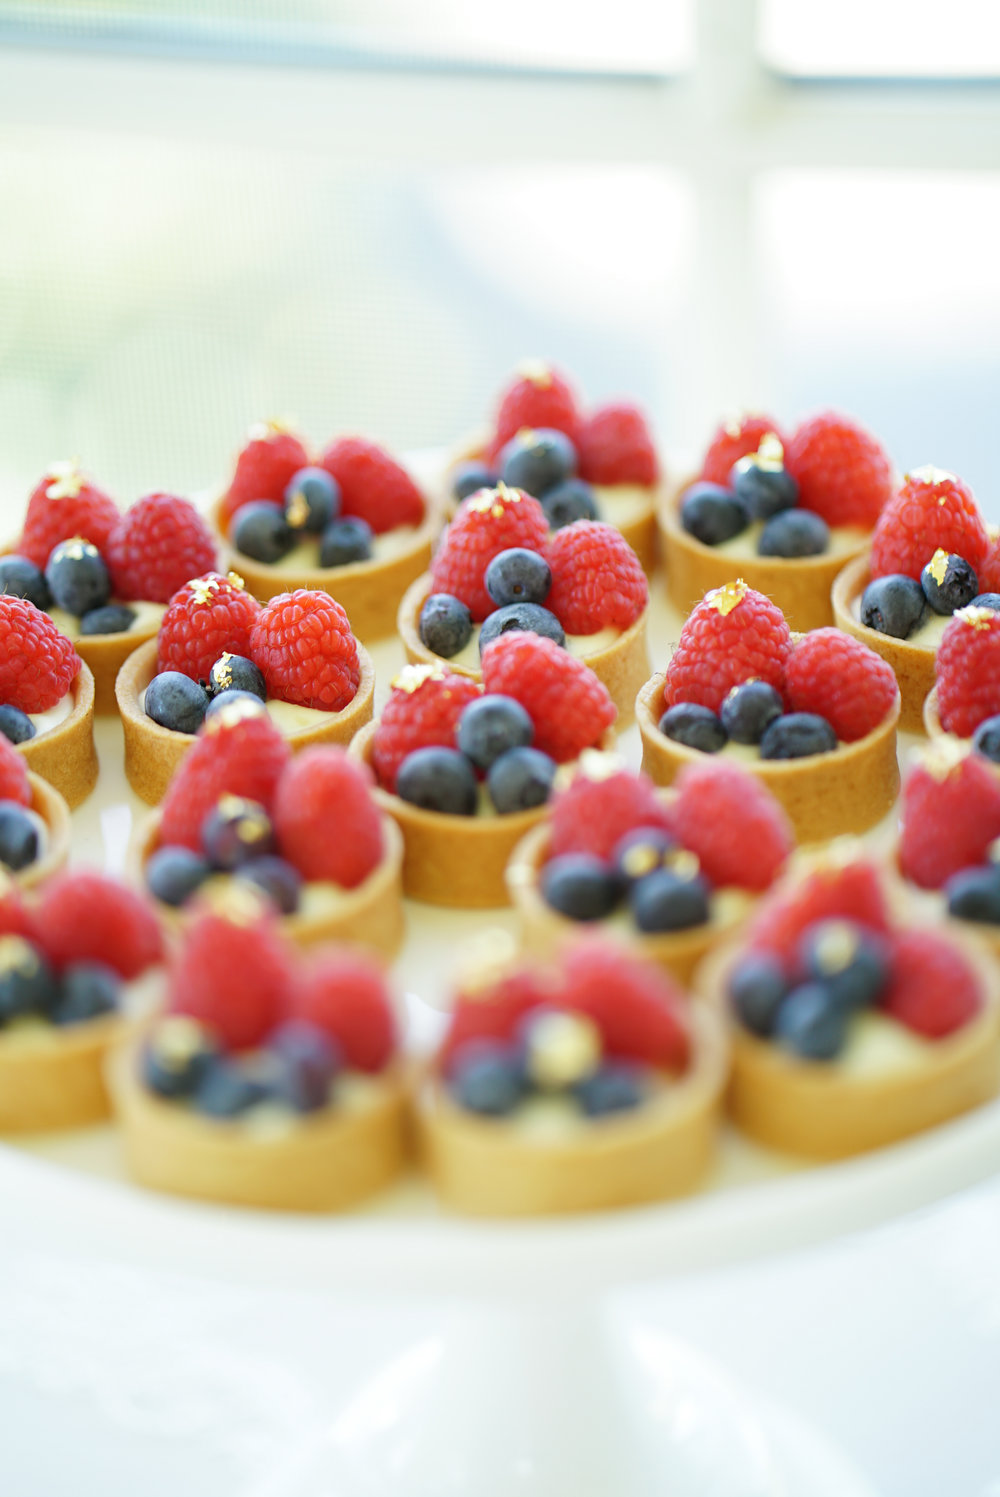 Hemsley 10.2.16 Minikhada fruit tart (1 of 1).jpg